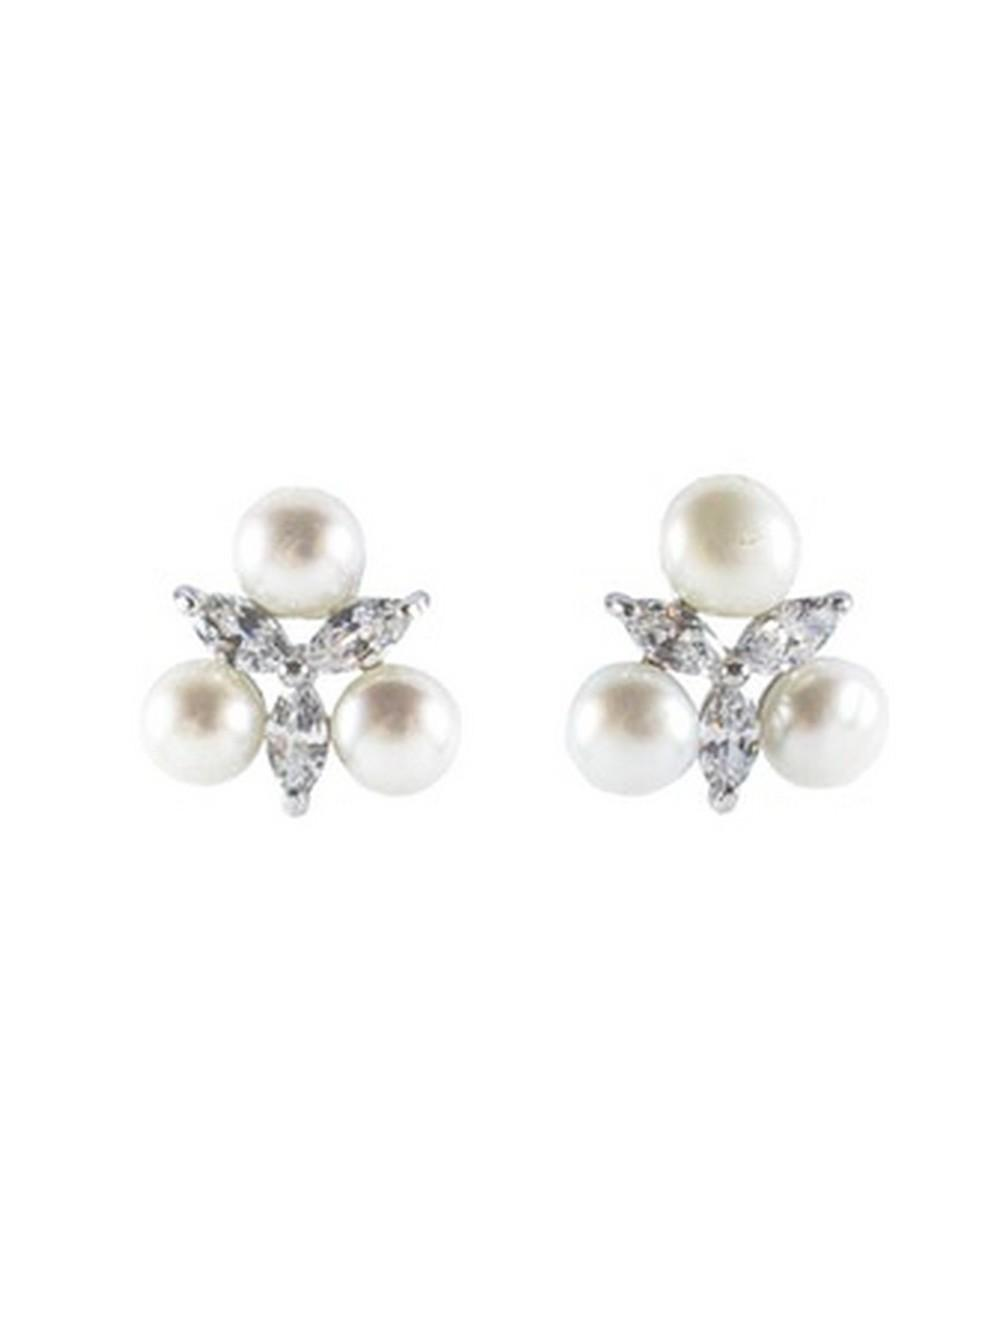 Monarch Starburst Pearl Earrings